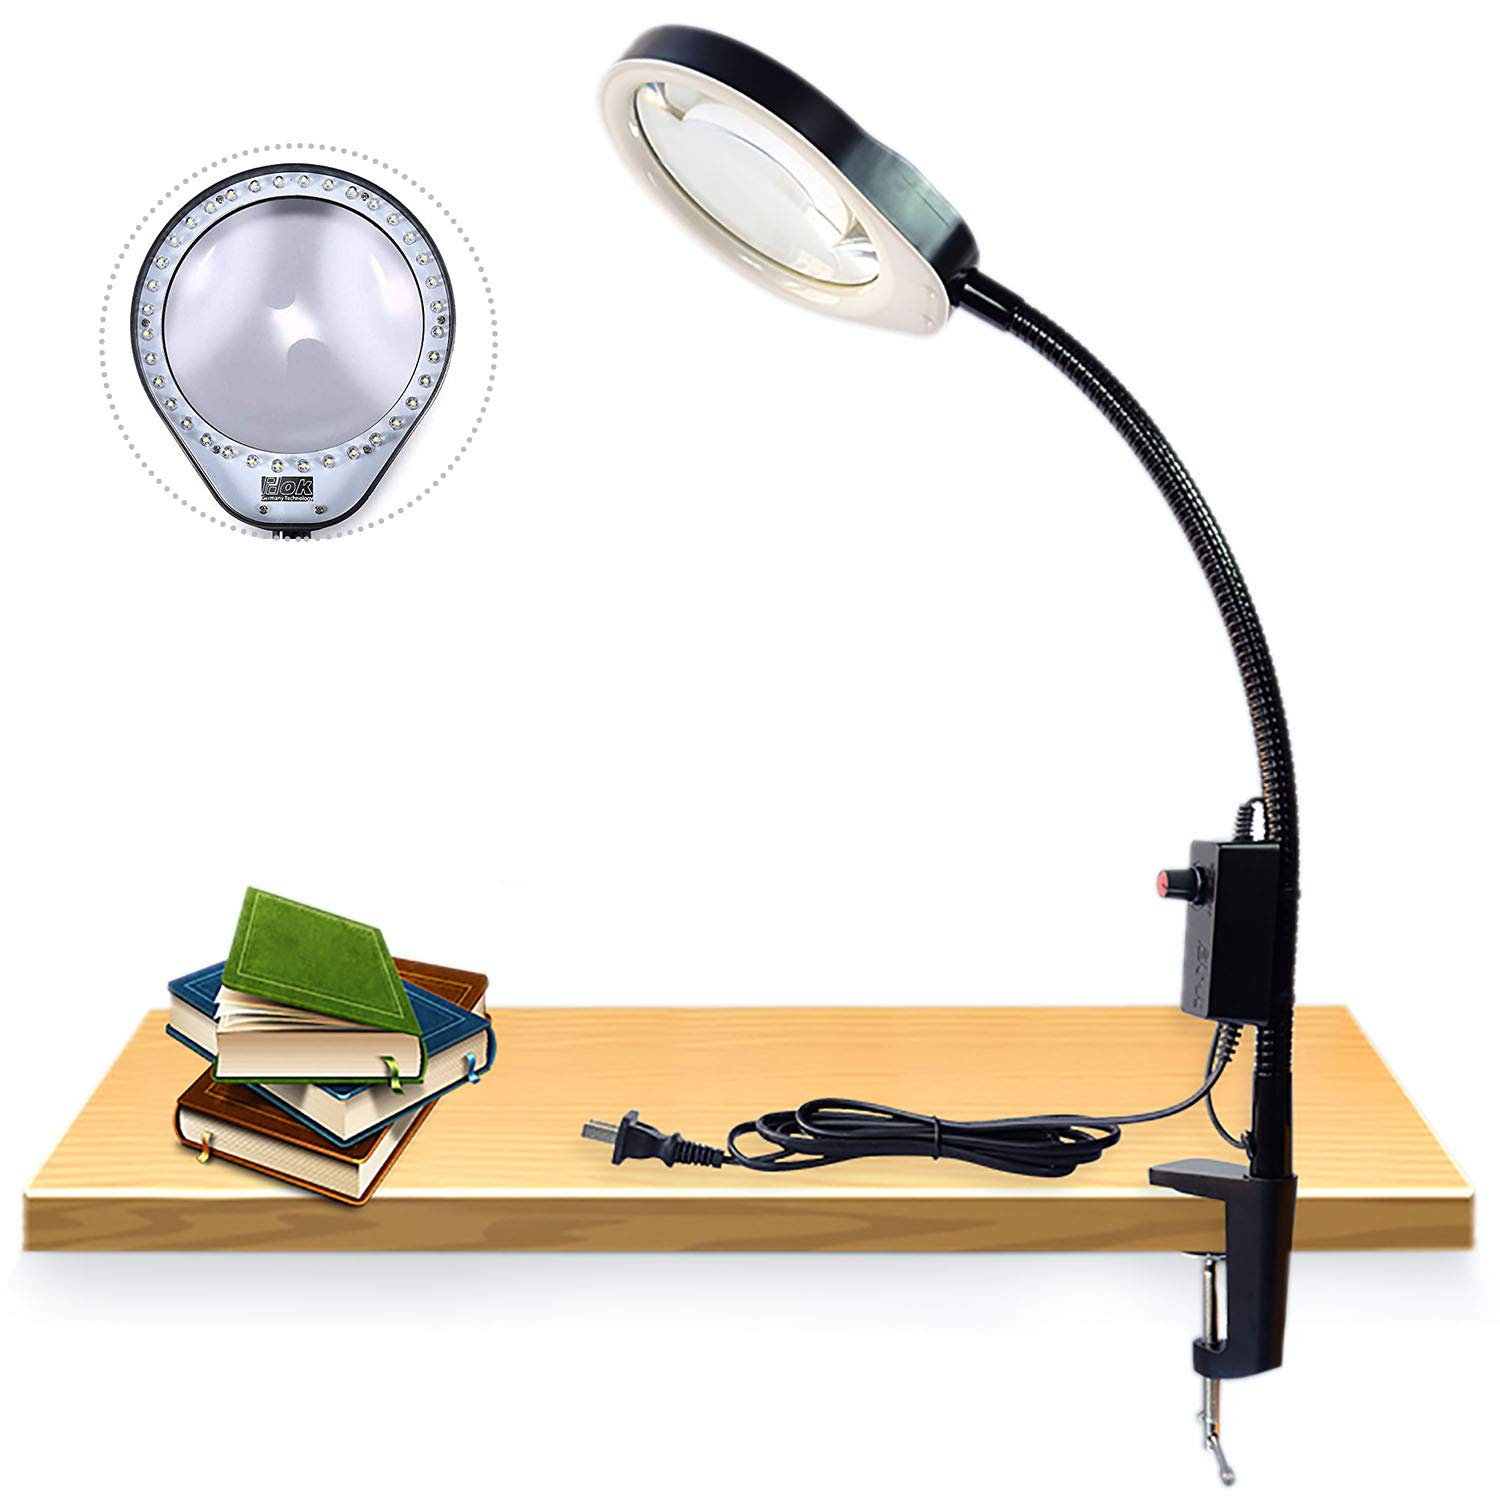 Desktop Magnifier Lamp Daylight Effect Magnifying Glass Lamps Long arm Bracket Clip Clipboard Magnifier with a Lamp Magnification Arm Length 80cm w/Desk LED Work Light Magnifying Glass (8X, Black)